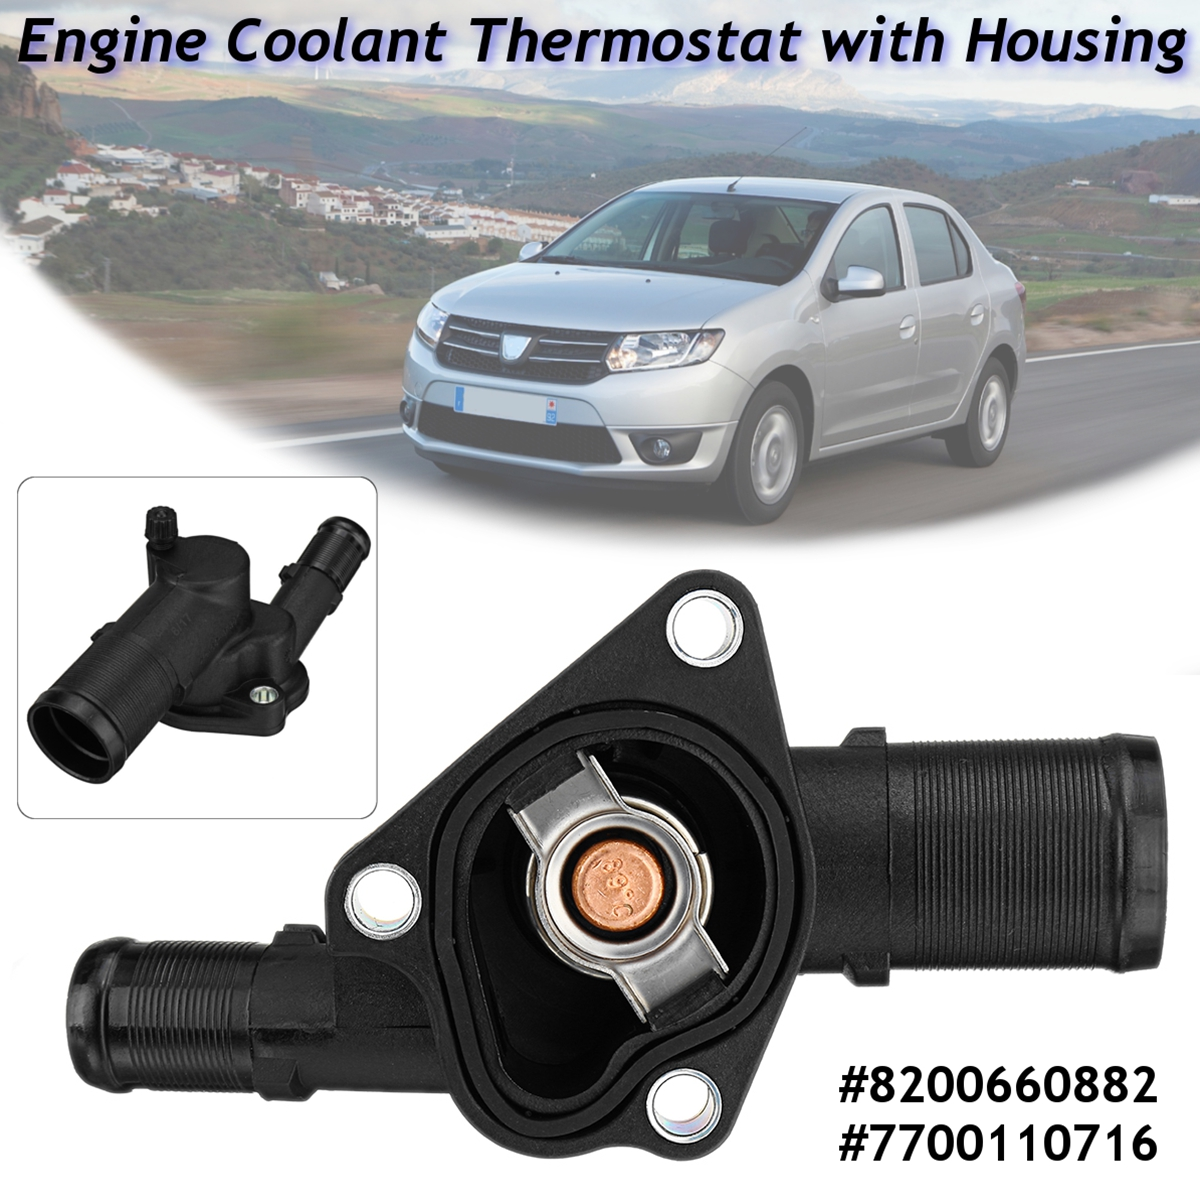 For Renault Clio Kangoo Twingo Dacia Logan Sandero Nissan Engine Coolant Kubistar 8200660882 Thermostat With Housing In Thermostats Parts From